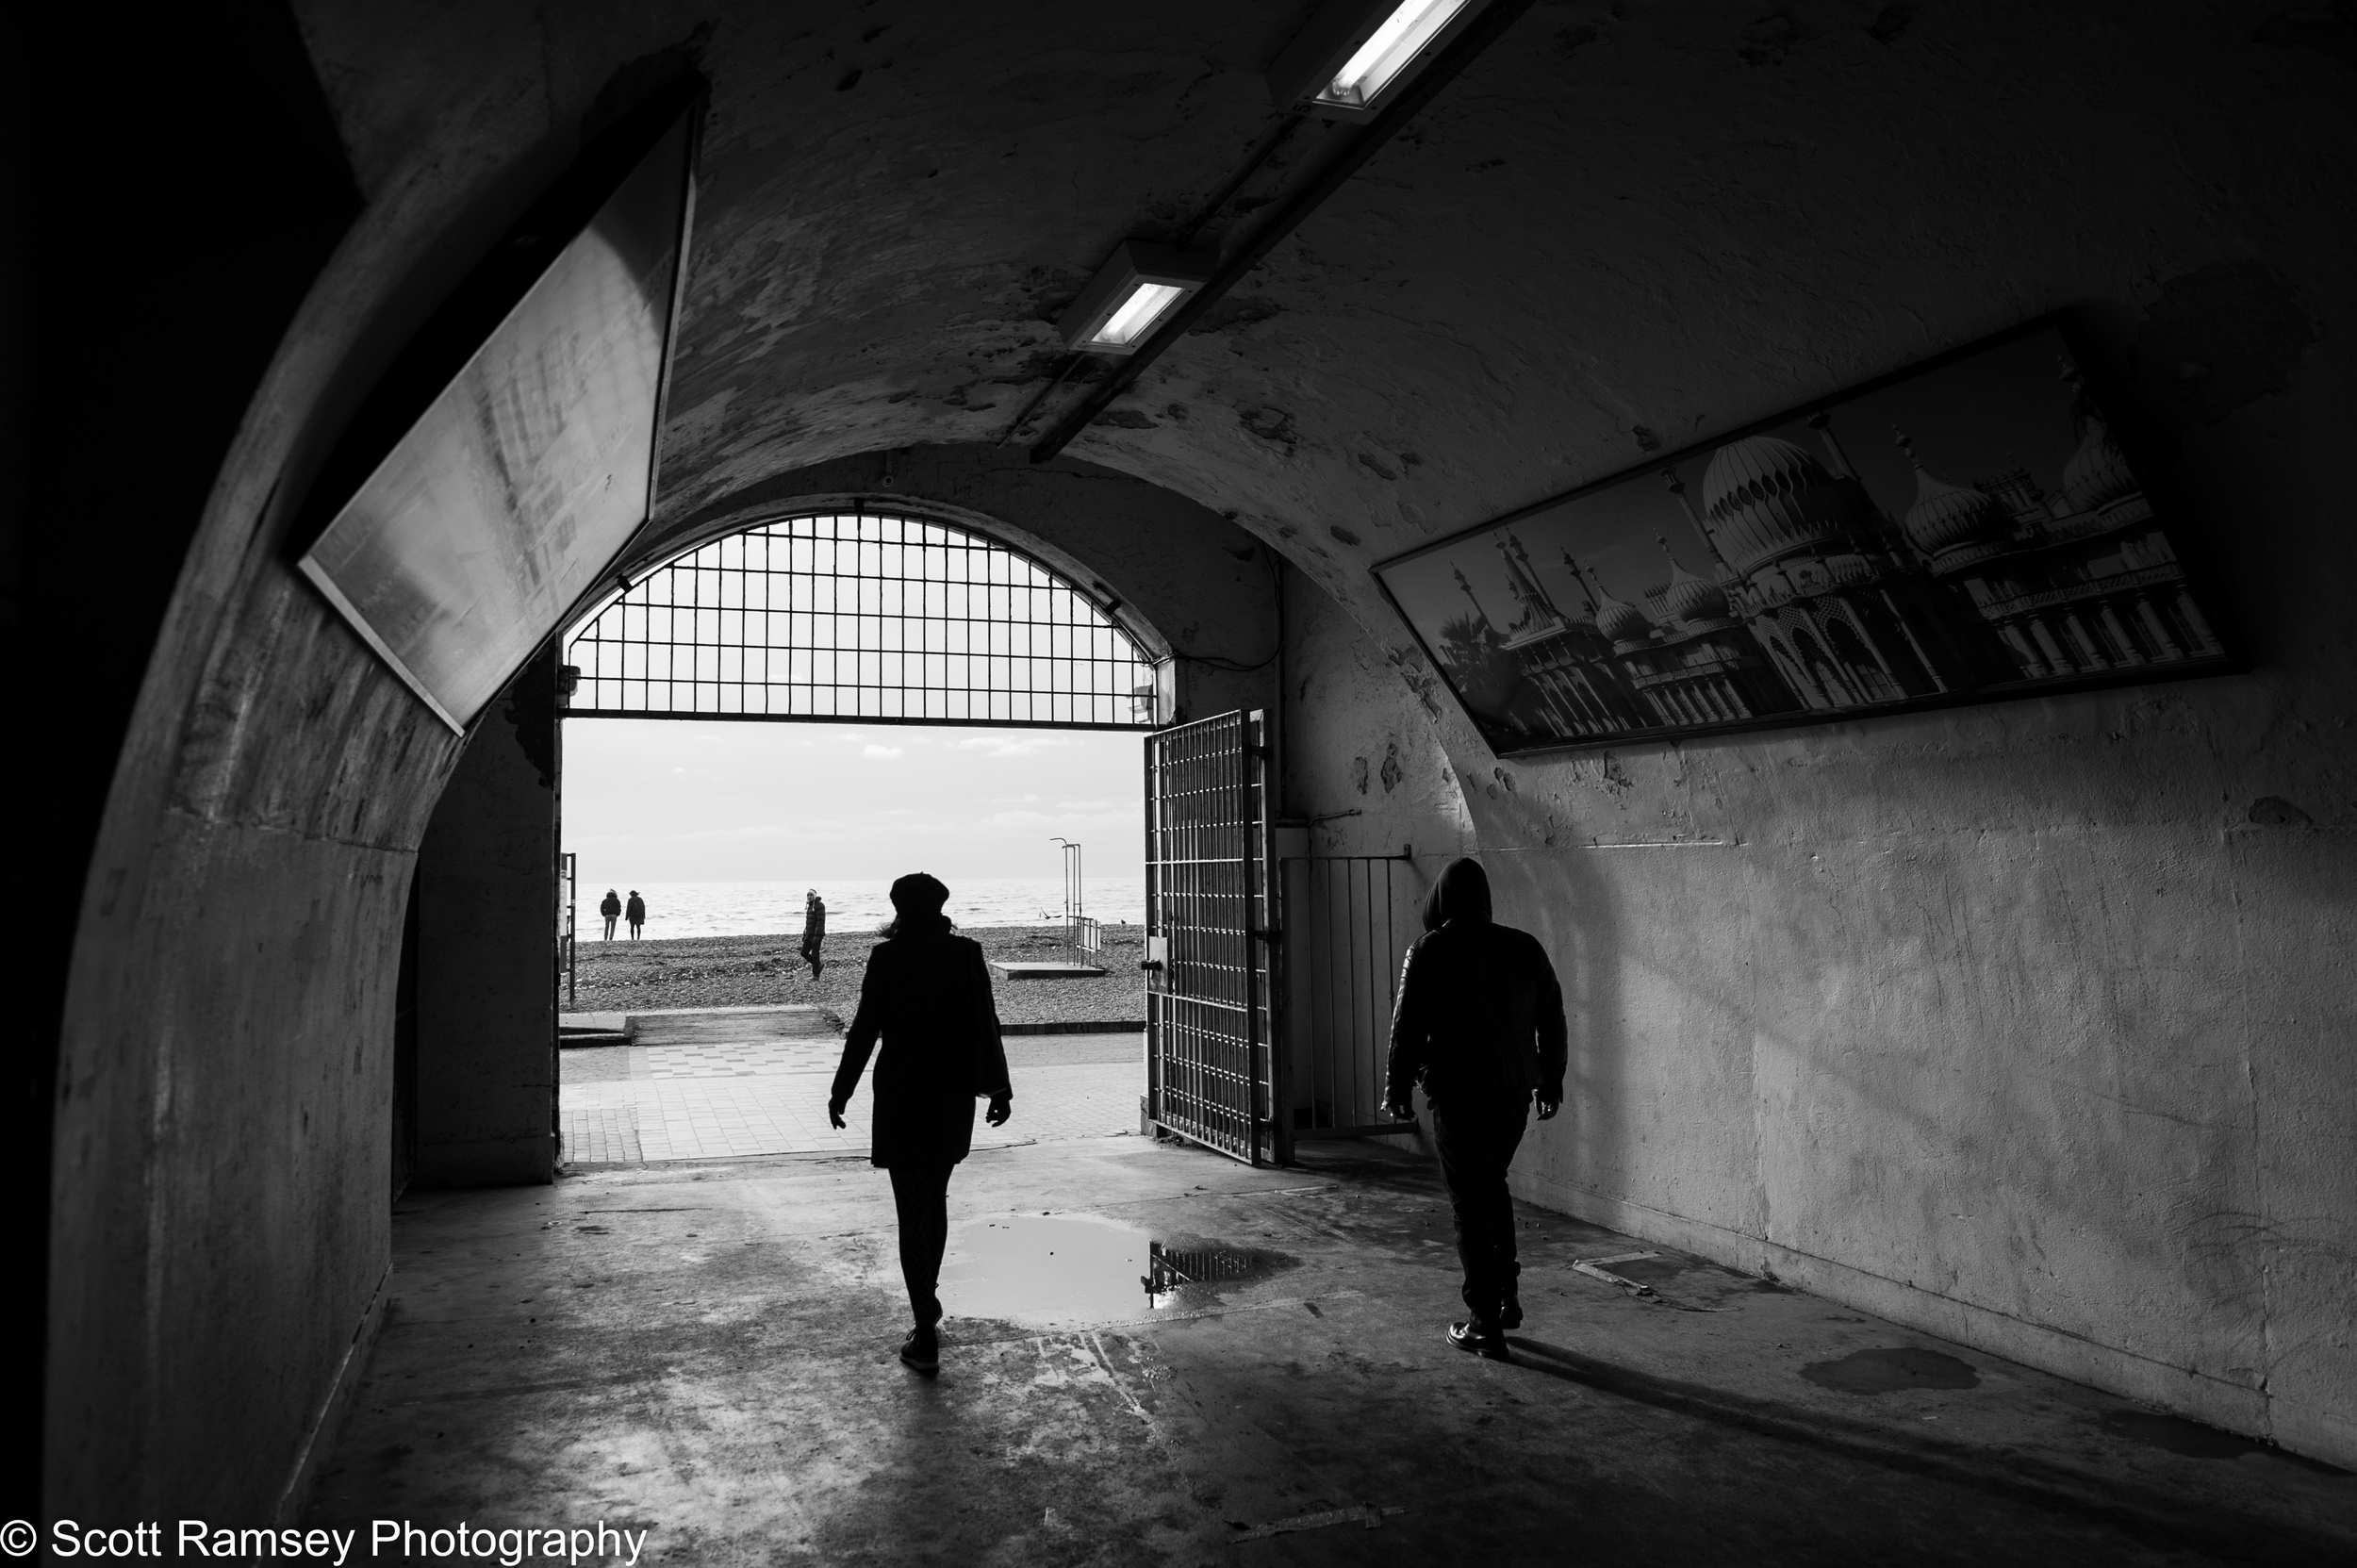 People are silhouetted against the winter sun as they walk through a tunnel that leads onto the beach on Brighton Seafront, East Sussex, UK. An old poster showing the The Royal Pavilion is on the wall above their heads. Photo by Scott Ramsey Photography